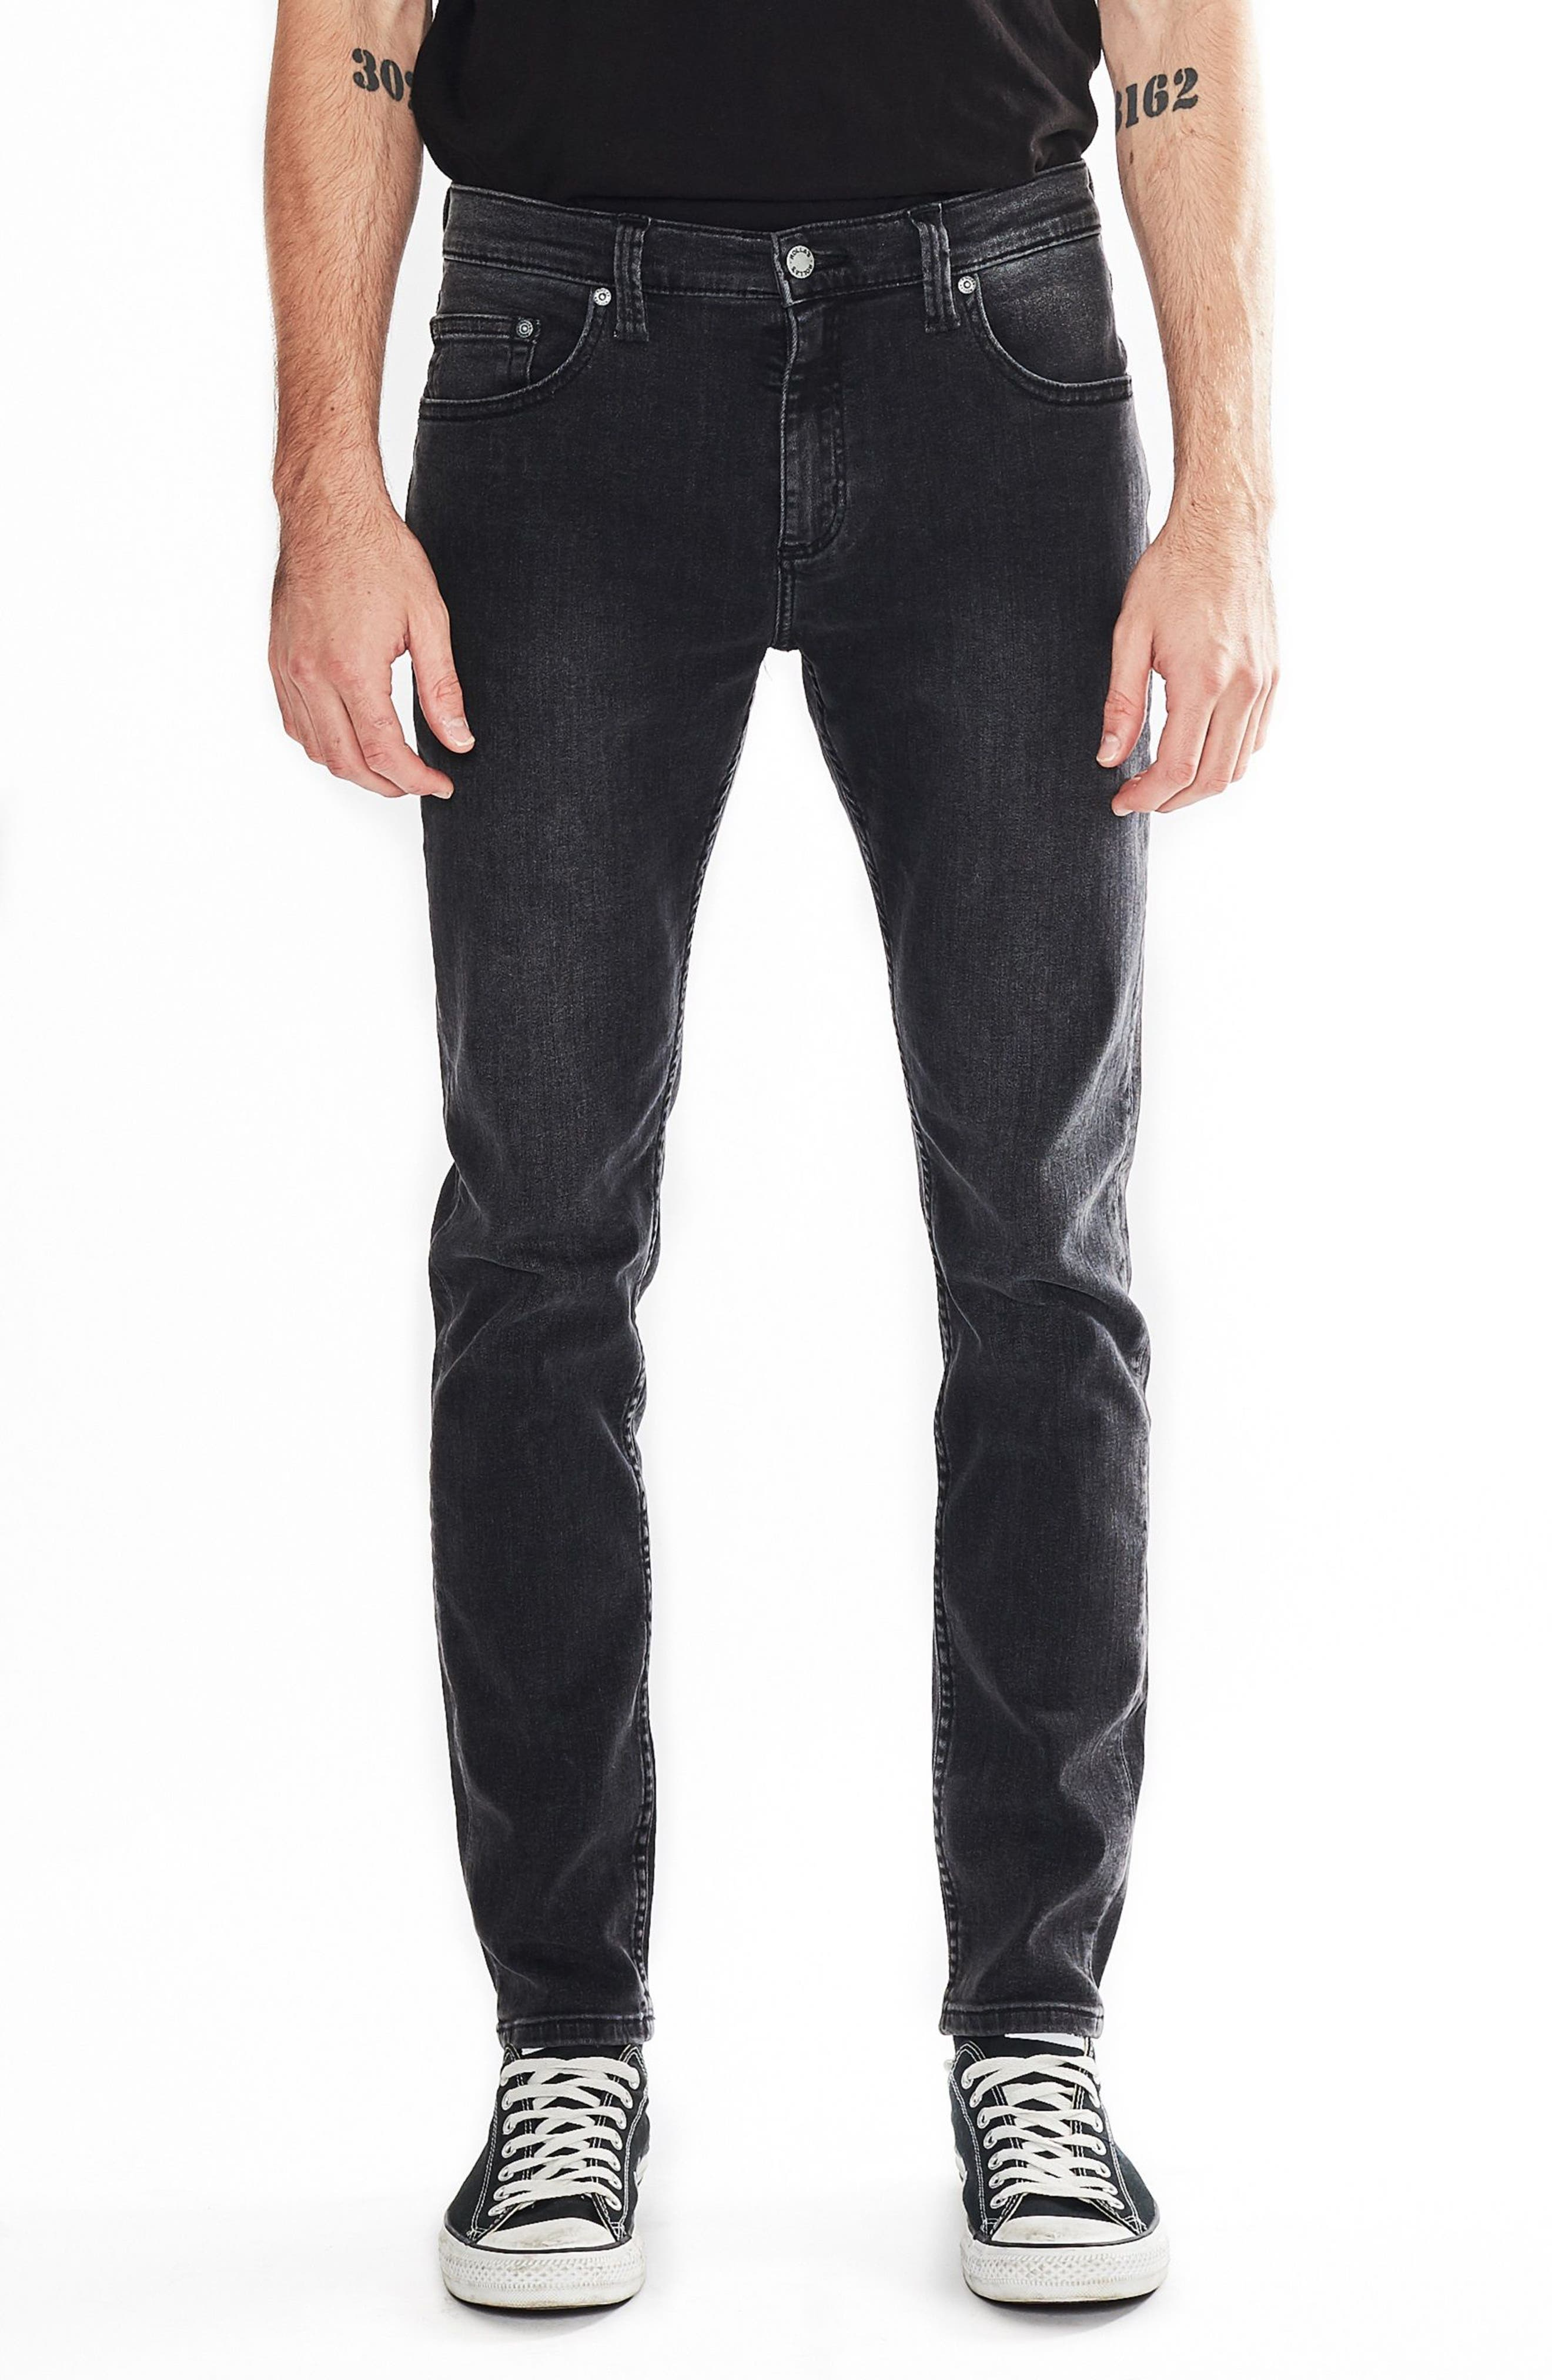 ROLLA'S Stinger Skinny Fit Jeans (Old Gold)